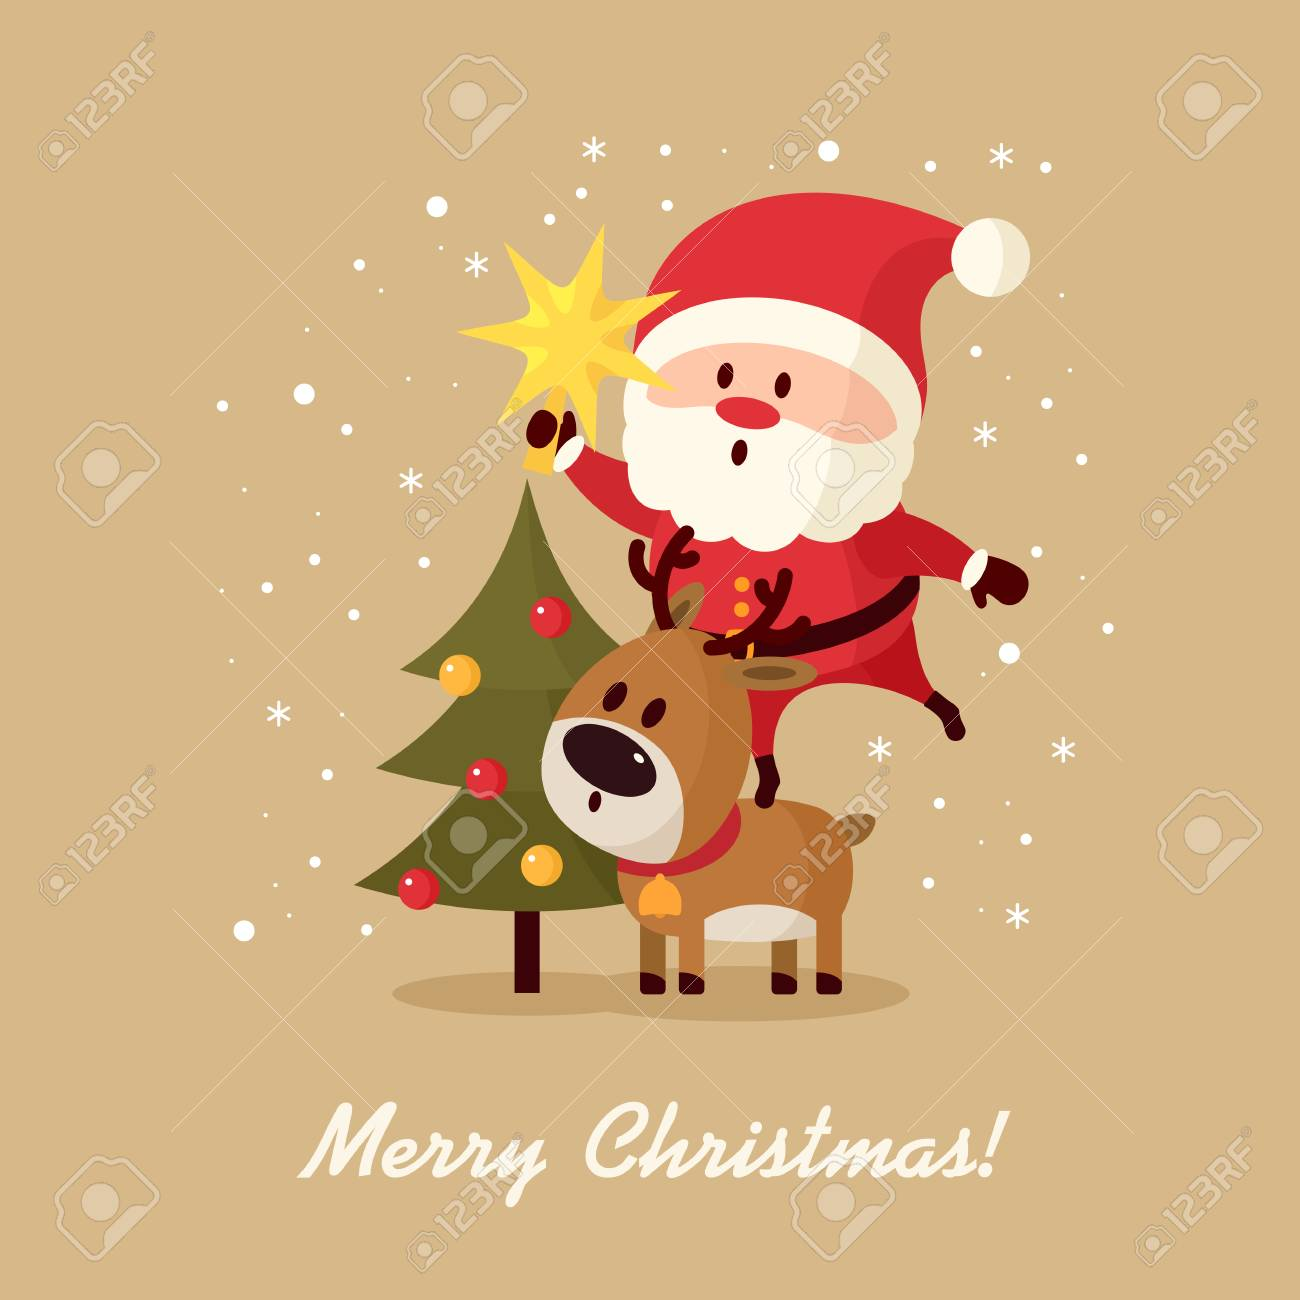 Santa Claus With Bag Of Gifts And Christmas Tree. Merry Christmas ...